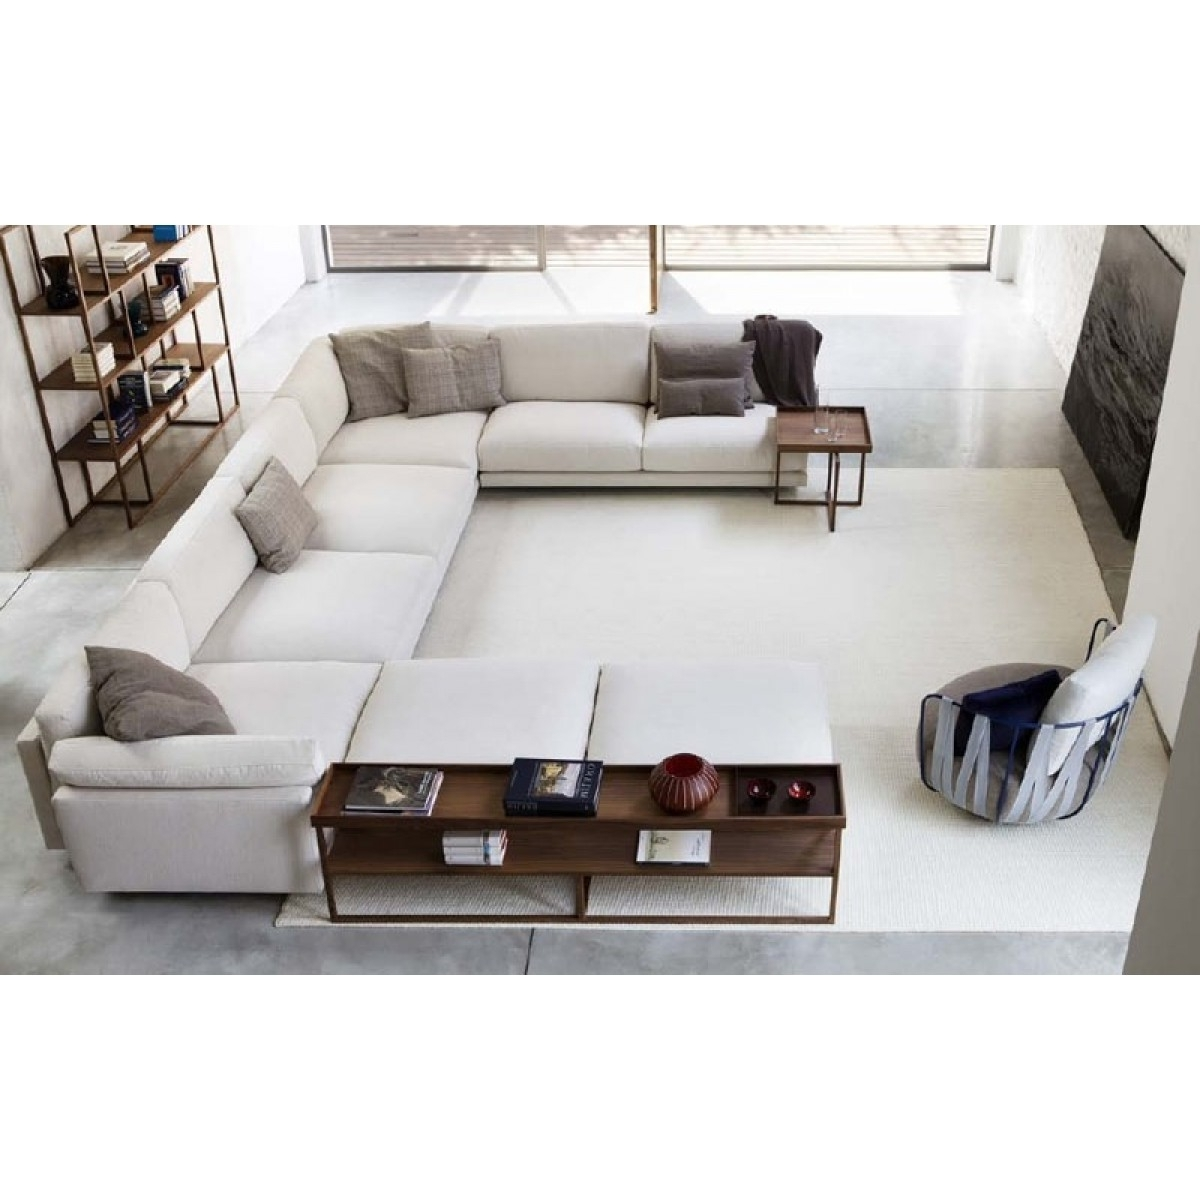 gallery of long modern sofas view 18